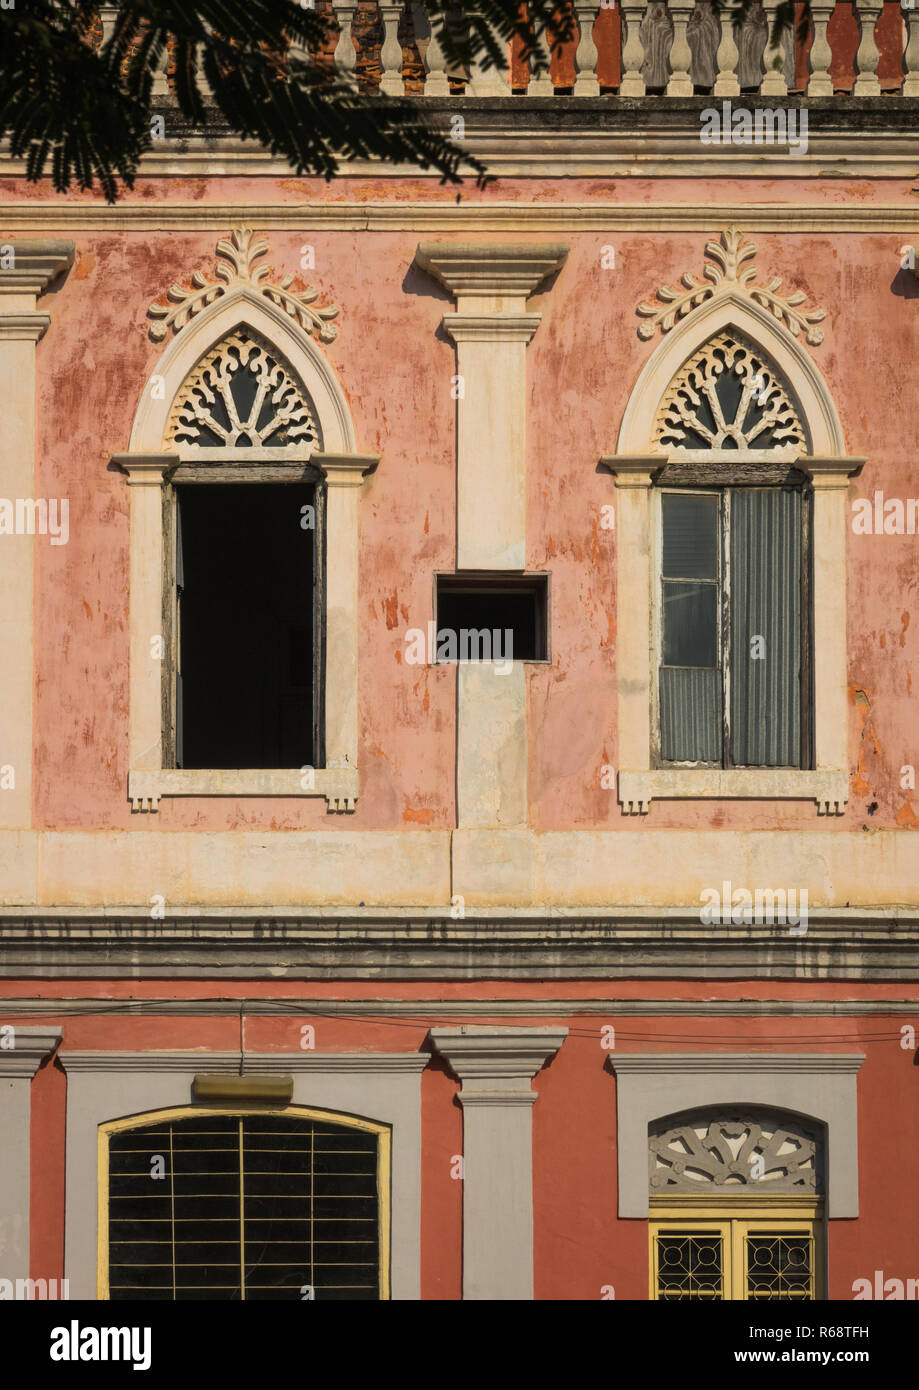 Windows from an old Portuguese style colonial building, Benguela Province, Lobito, Angola - Stock Image